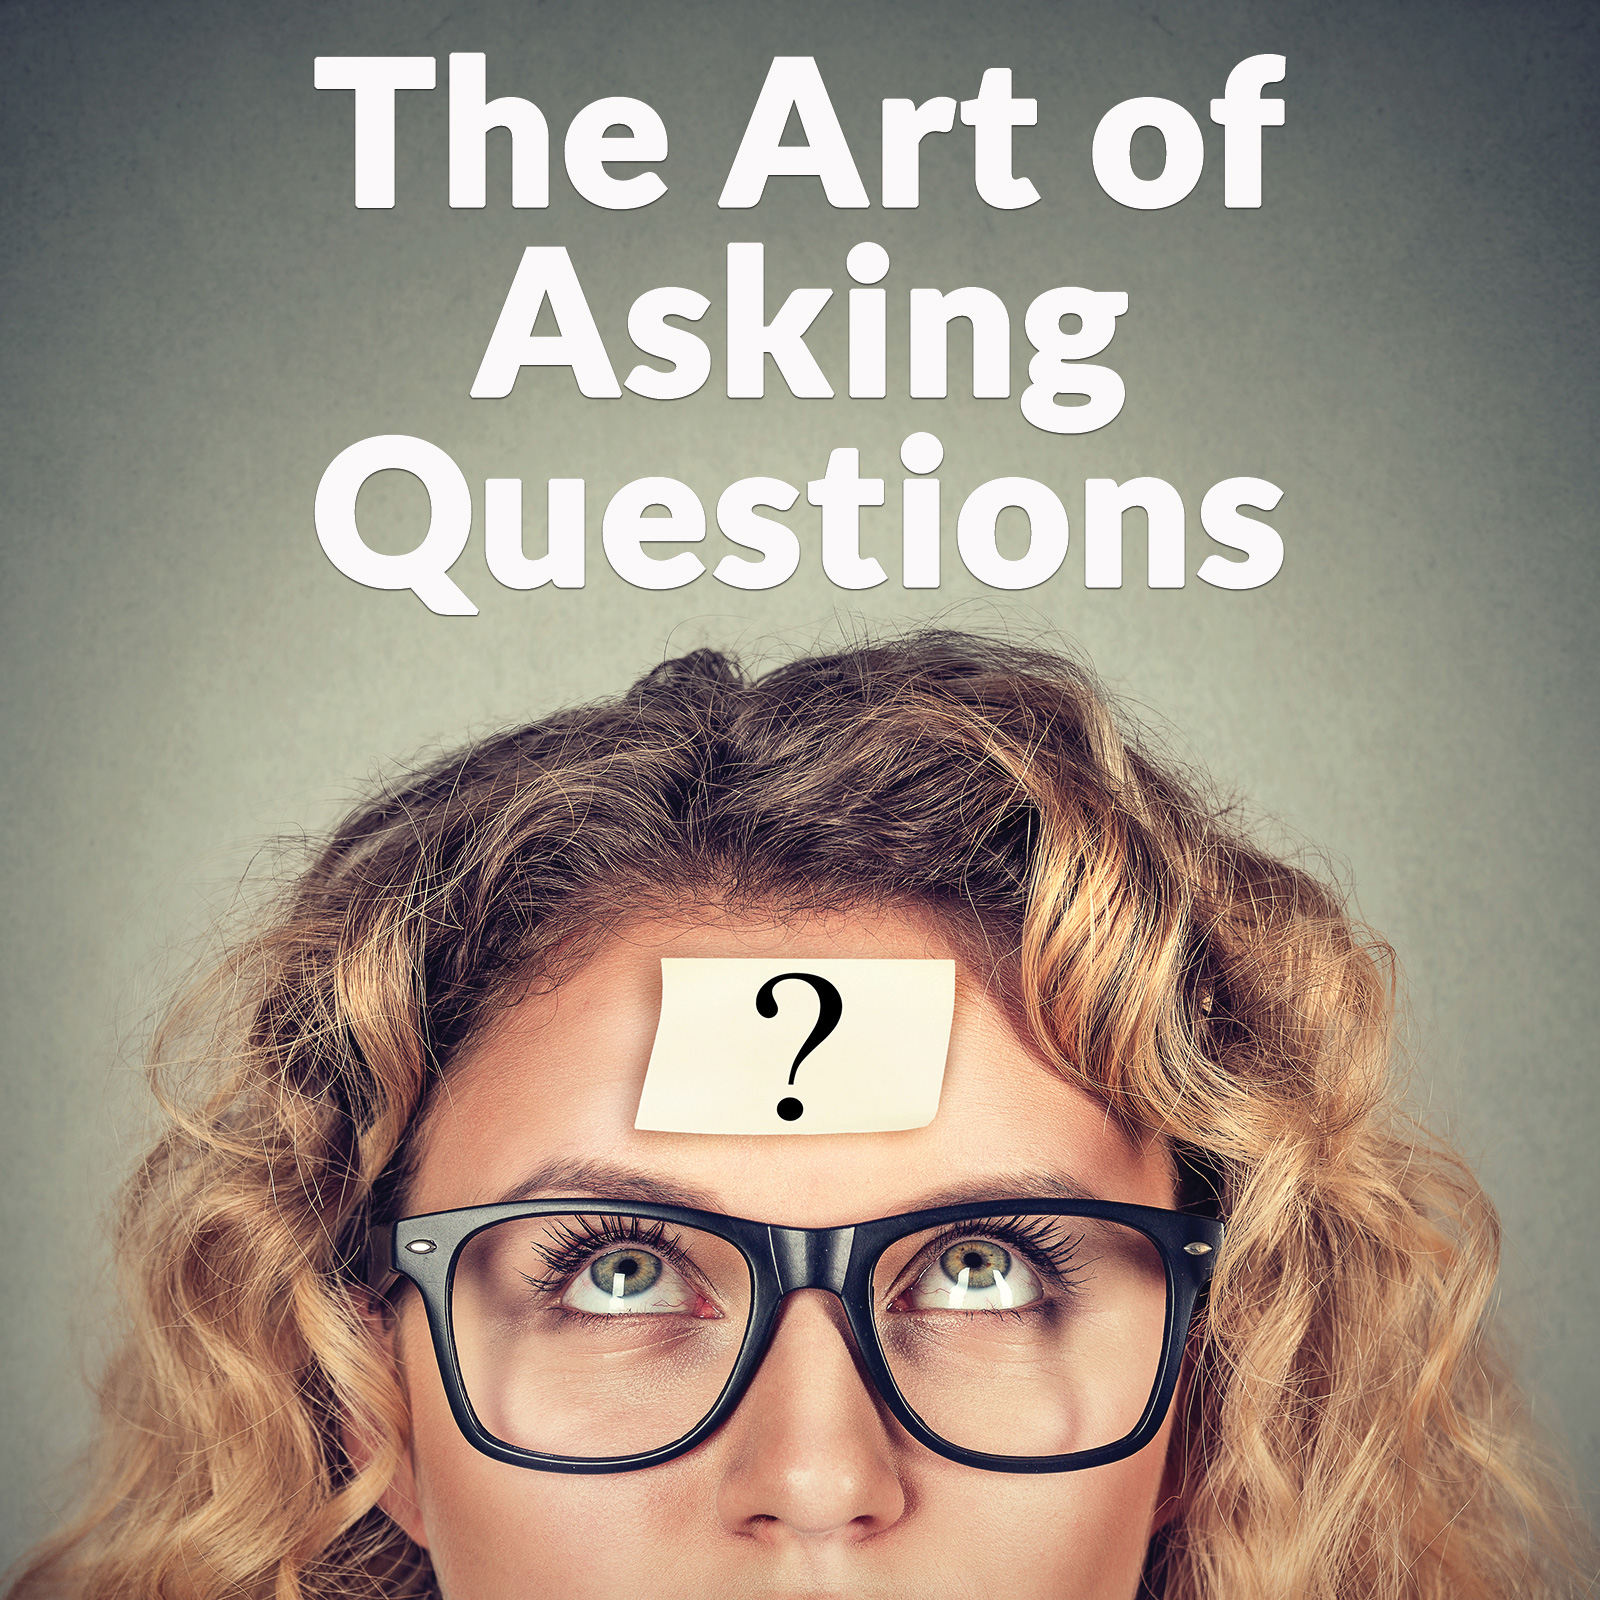 The Art of Asking Questions with Curry Glassell